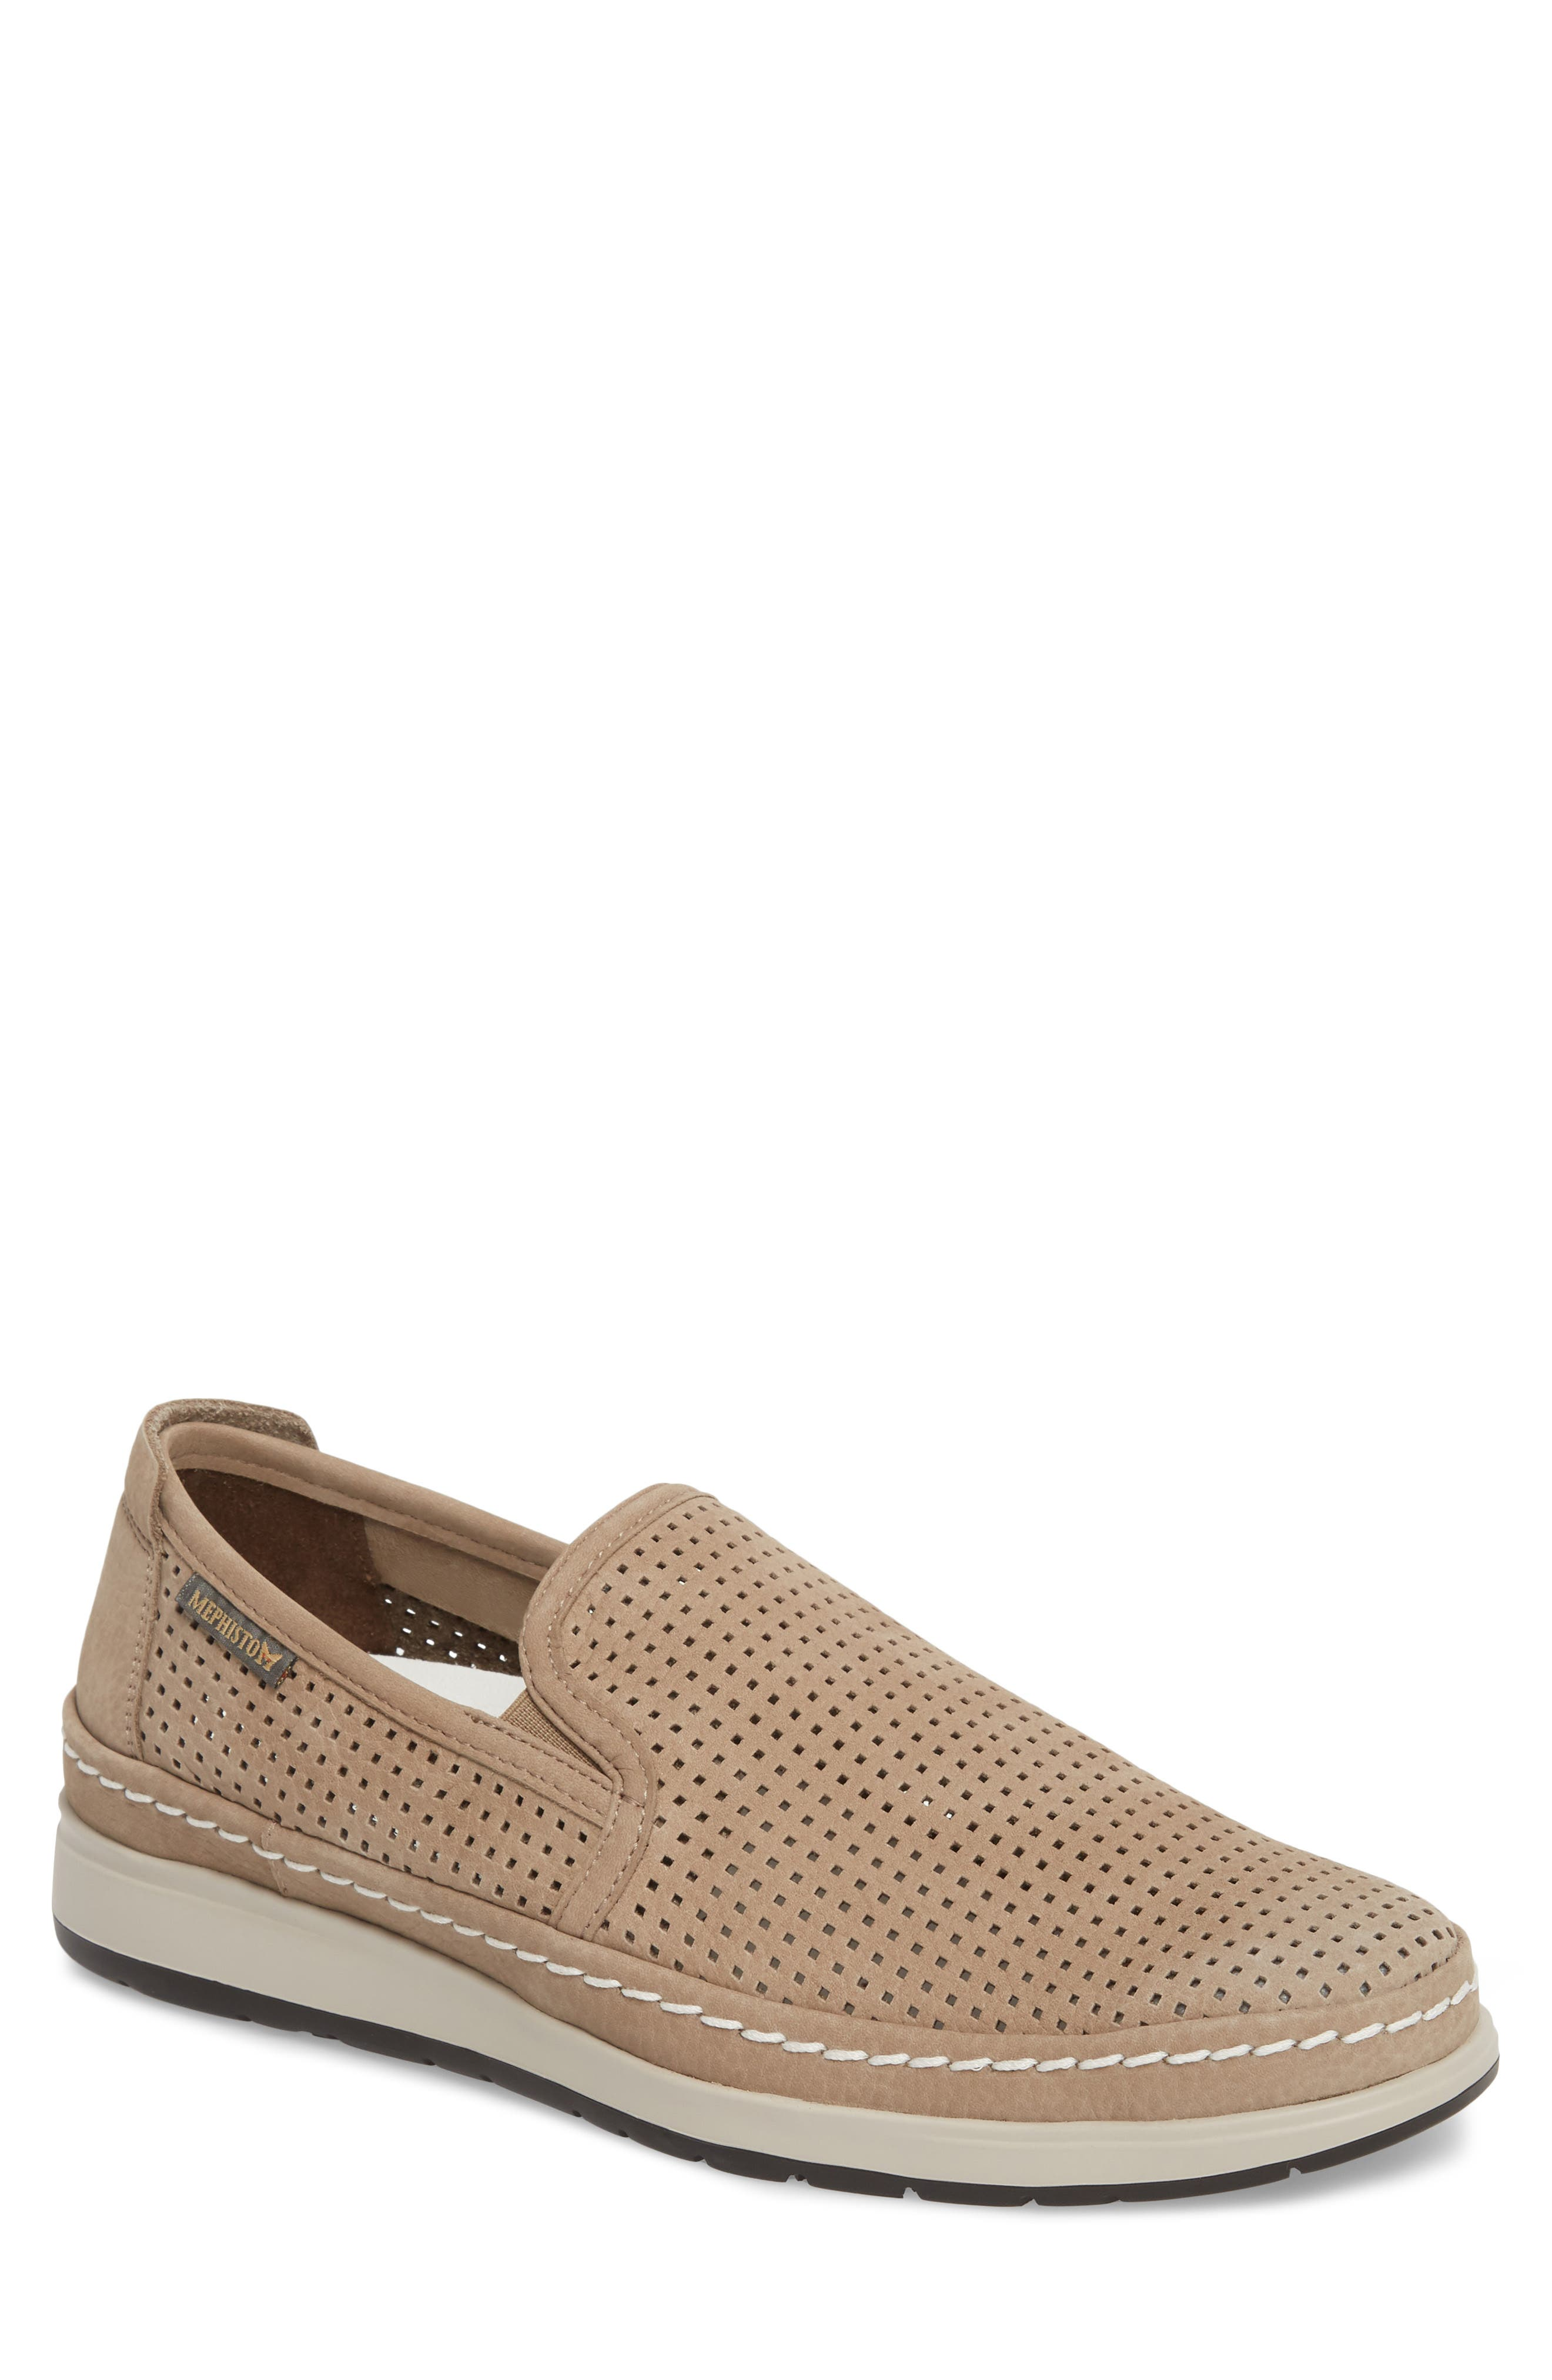 MEPHISTO, Hadrian Perforated Slip-On, Main thumbnail 1, color, SAND